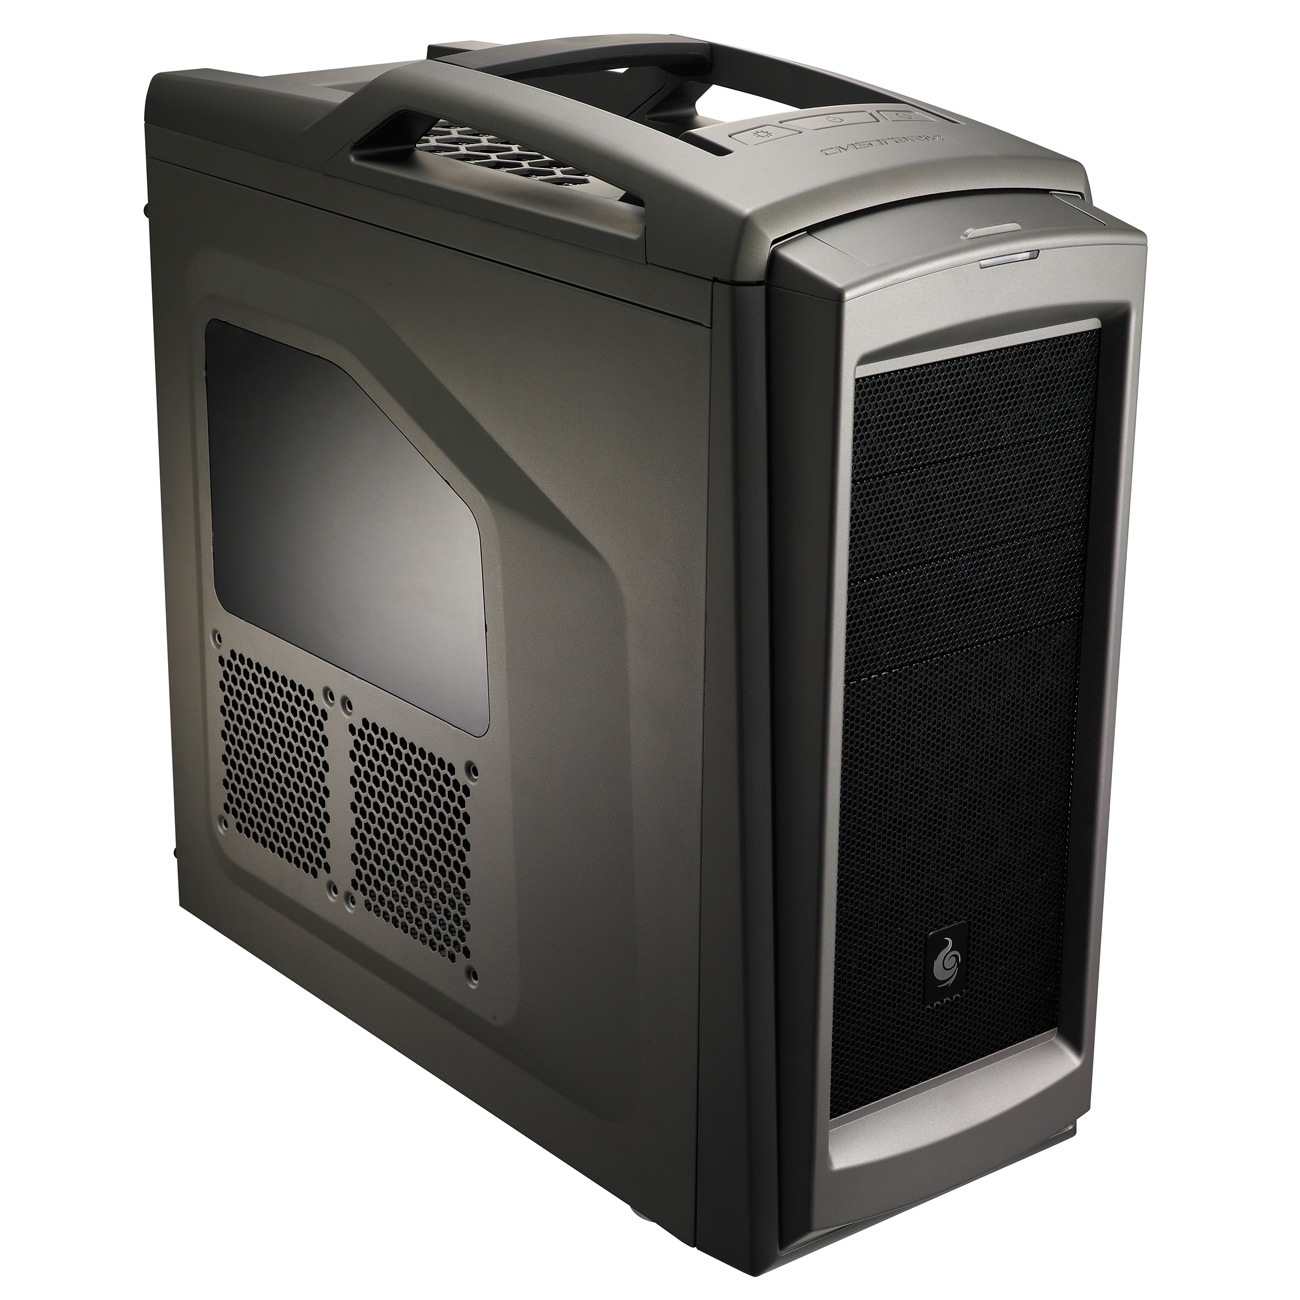 cooler master storm scout 2 gris sgc 2100 gwn1 achat vente bo tier pc sur. Black Bedroom Furniture Sets. Home Design Ideas